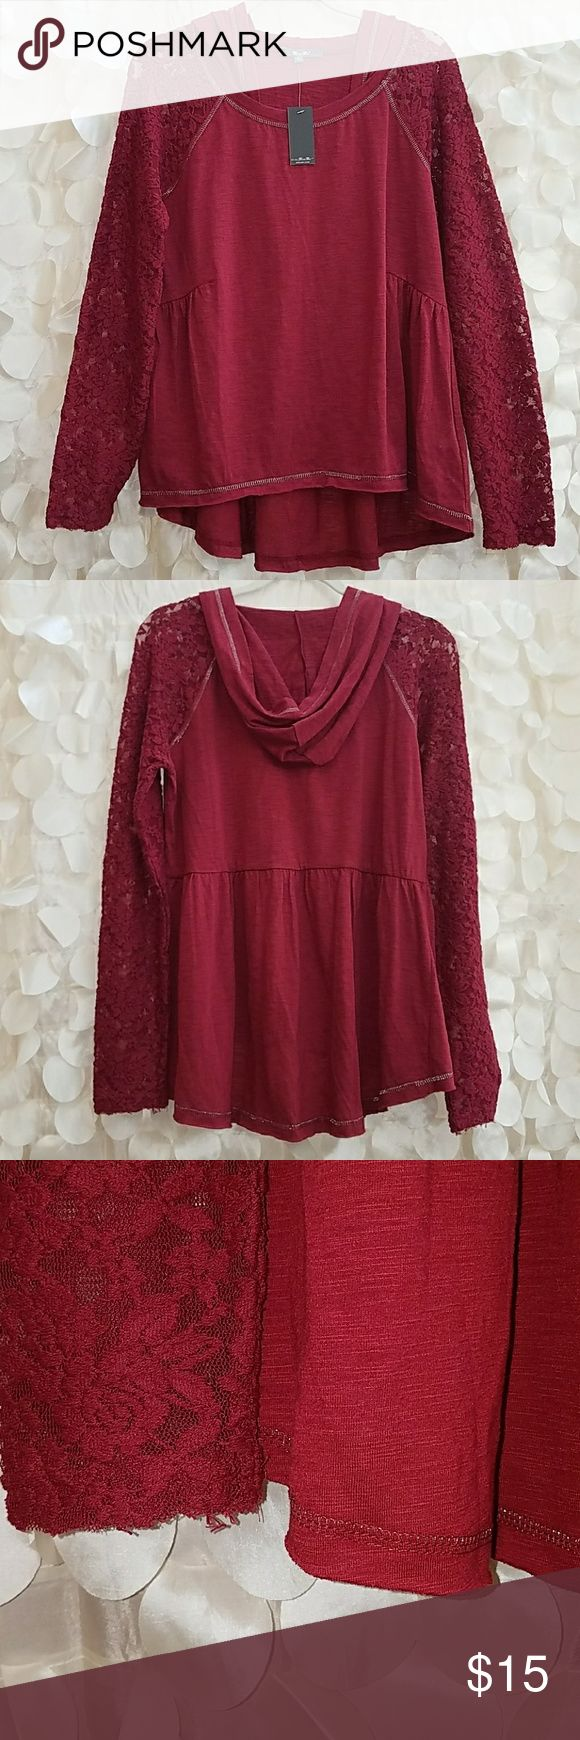 Miss Me, hi low, hooded top with lace sleeves Brand new, size Medium, Miss Me brand burgundy top with hi low hem, lace sleeves, with hood. Top has silver stiching with rough cut edges and and pleating at sides and back. Light weight, very cute! Can be worn dressed up or casual. Miss Me Tops